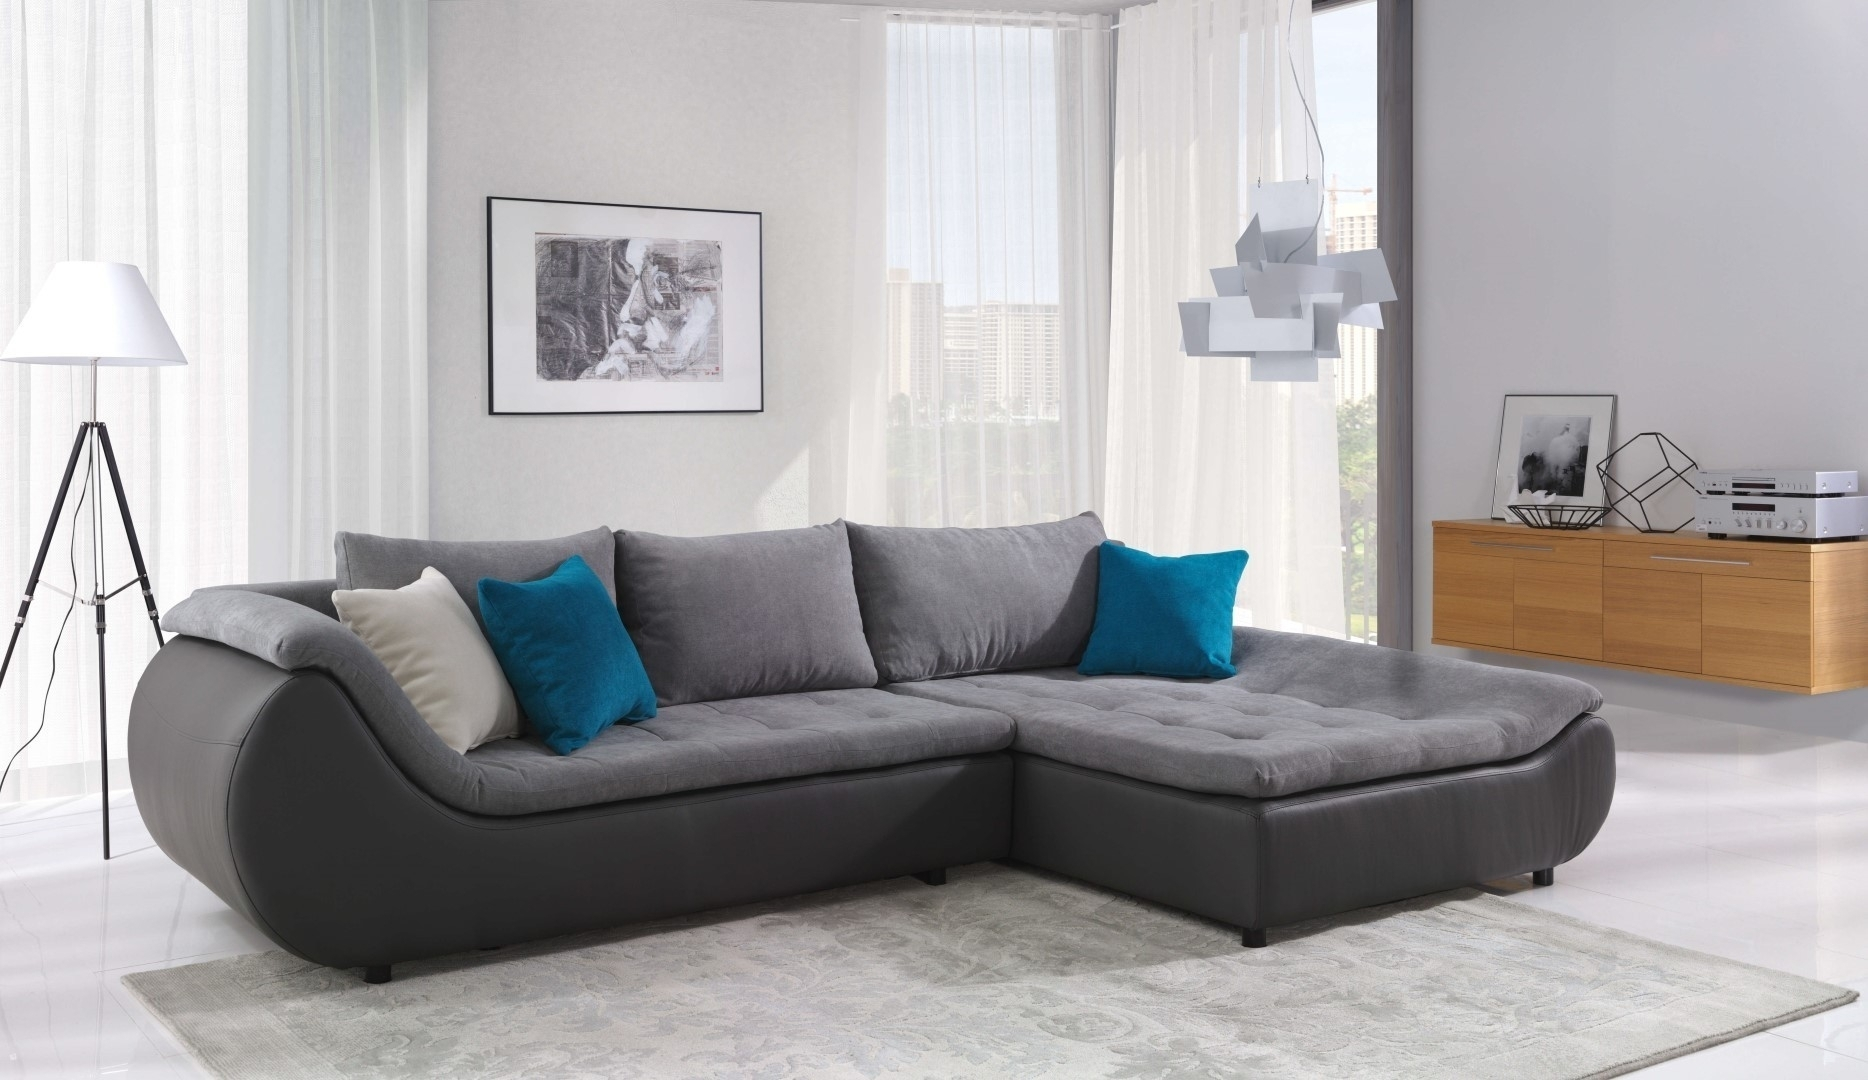 Collection Sectional Sofas Rochester Ny – Mediasupload For Rochester Ny Sectional Sofas (Image 2 of 10)